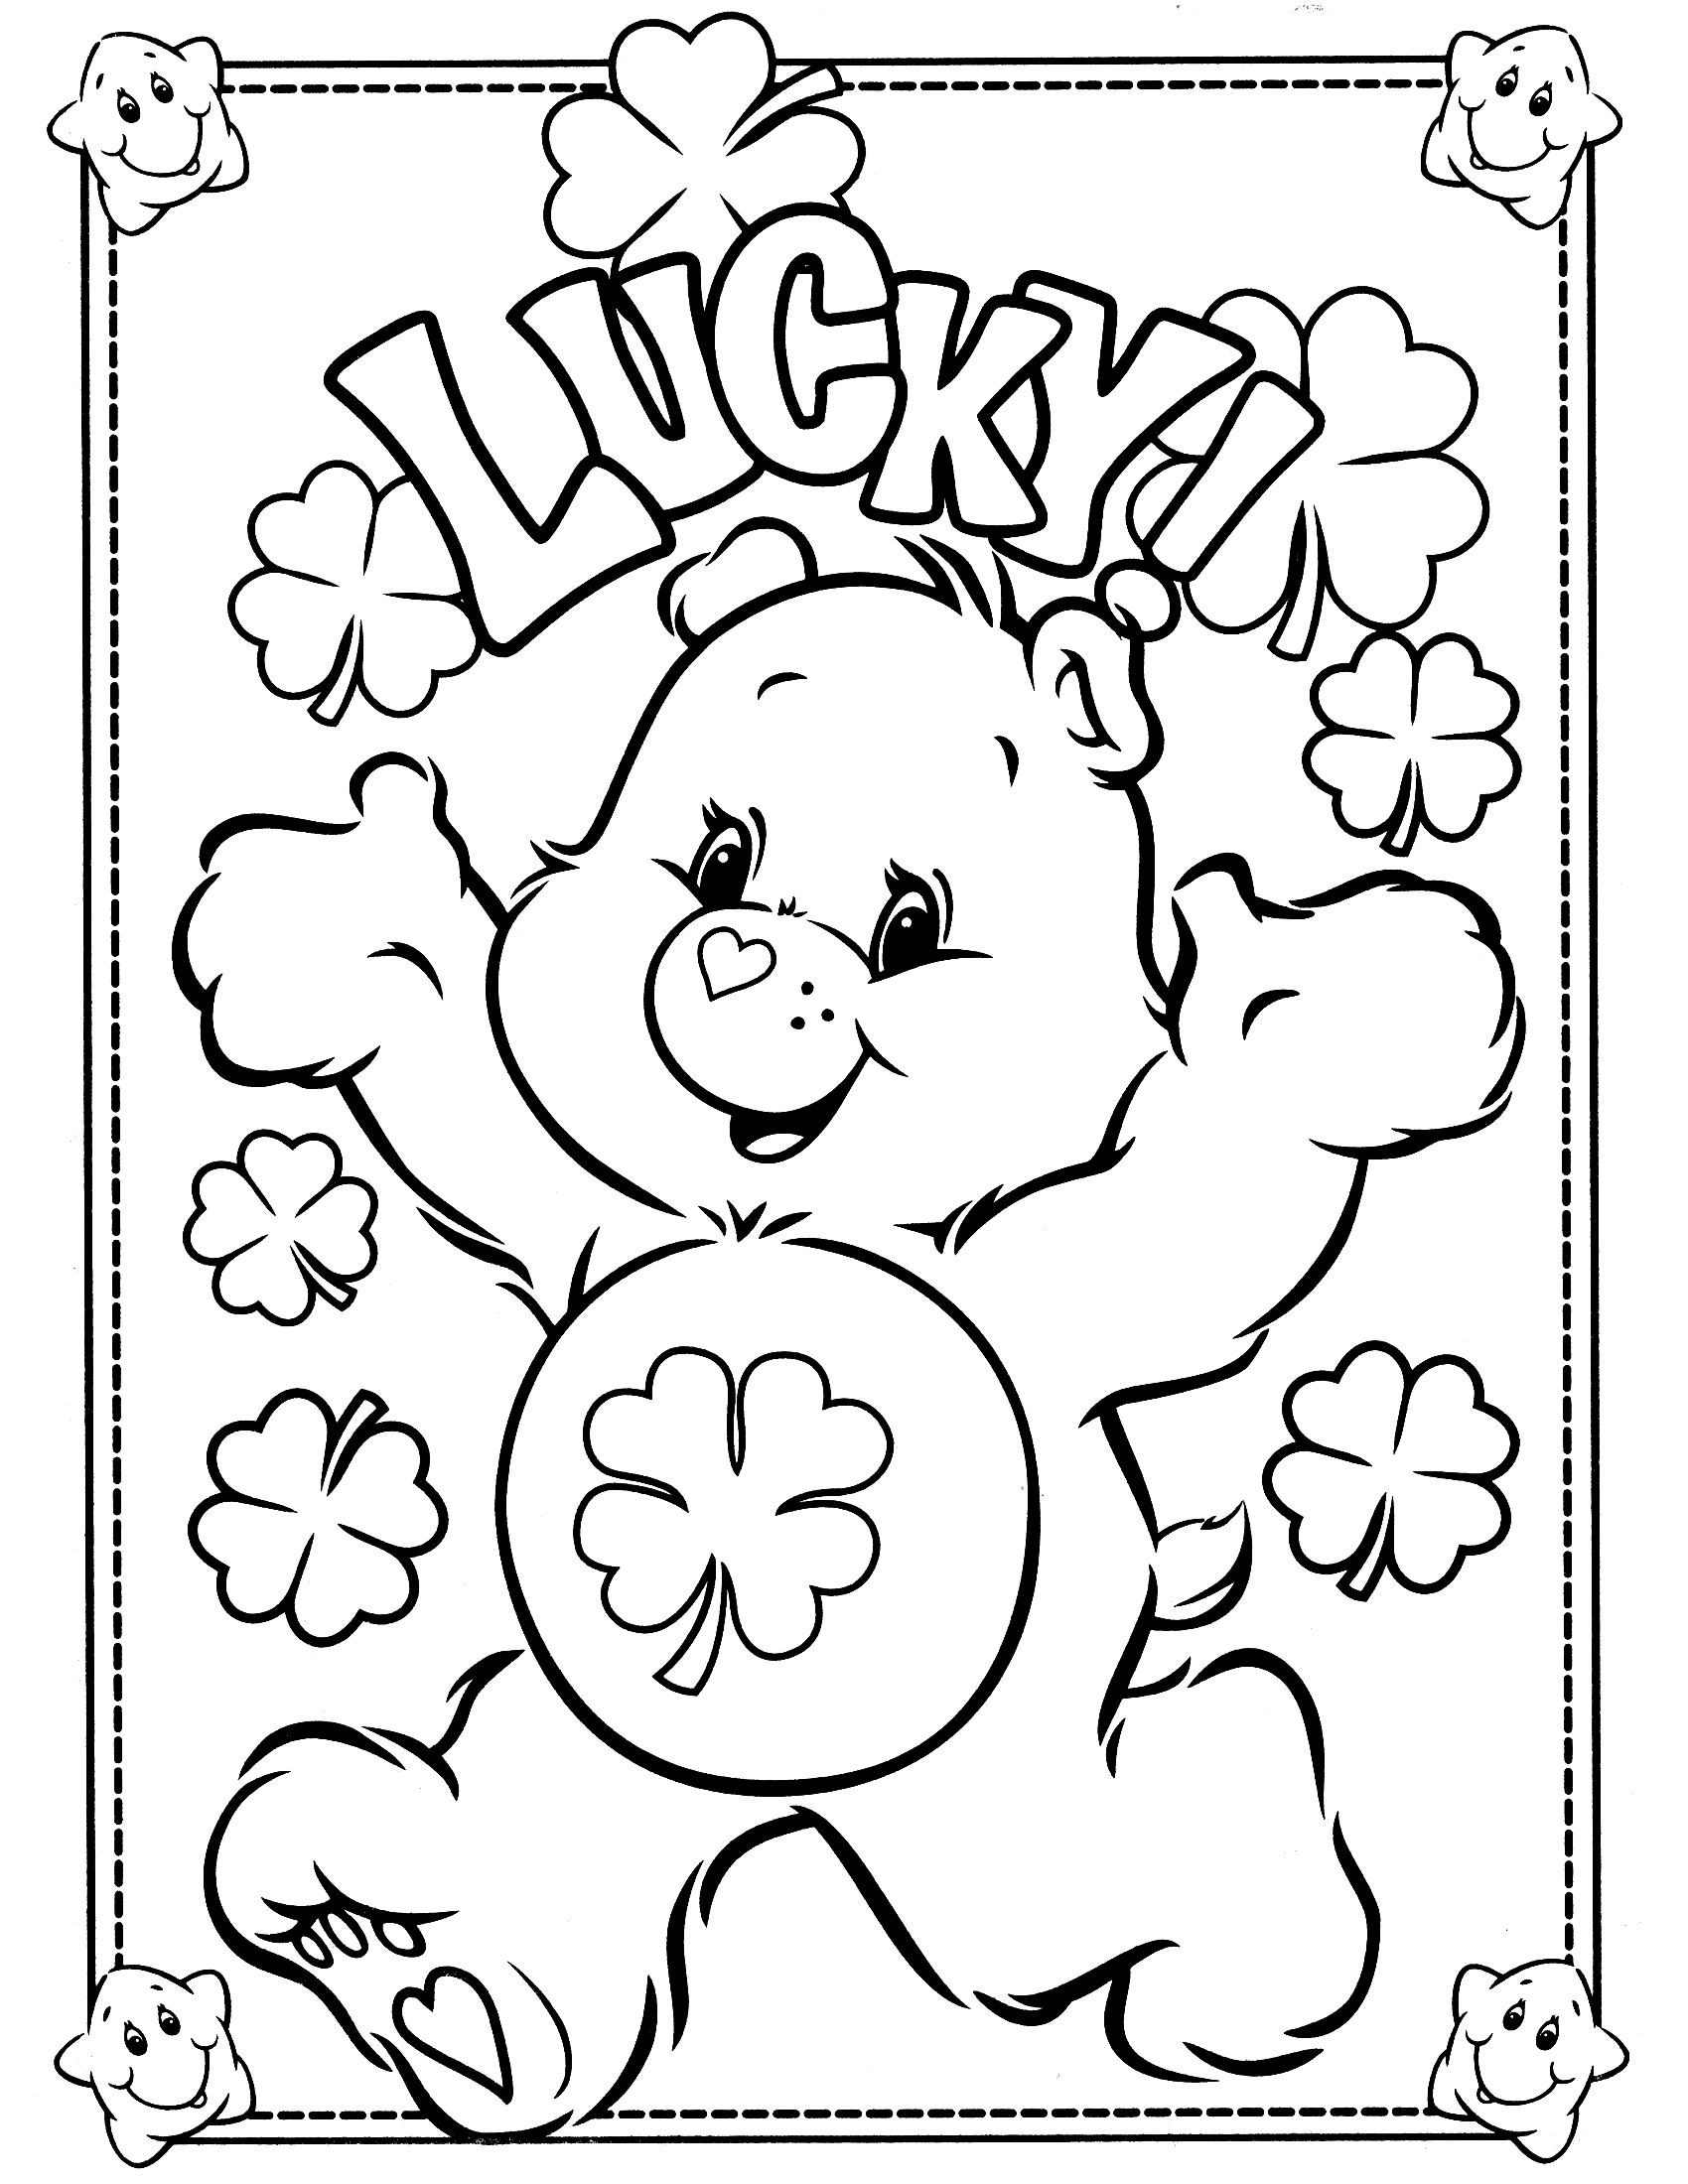 carebear cousin coloring pages - photo#49